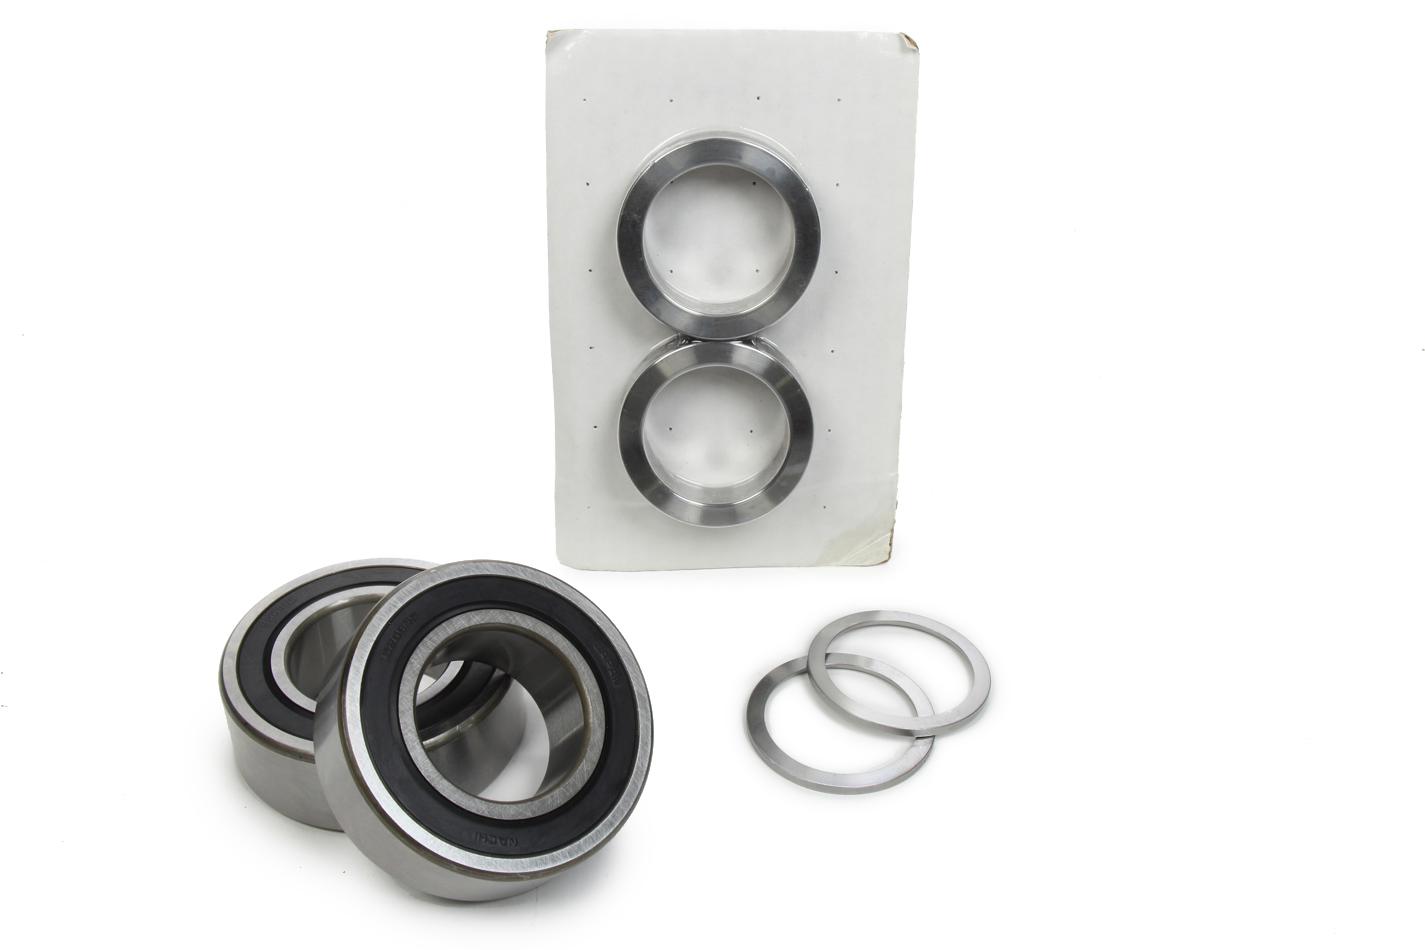 Mark Williams Axle Bearing Set - For HD Symmetrical Hsg. Ends